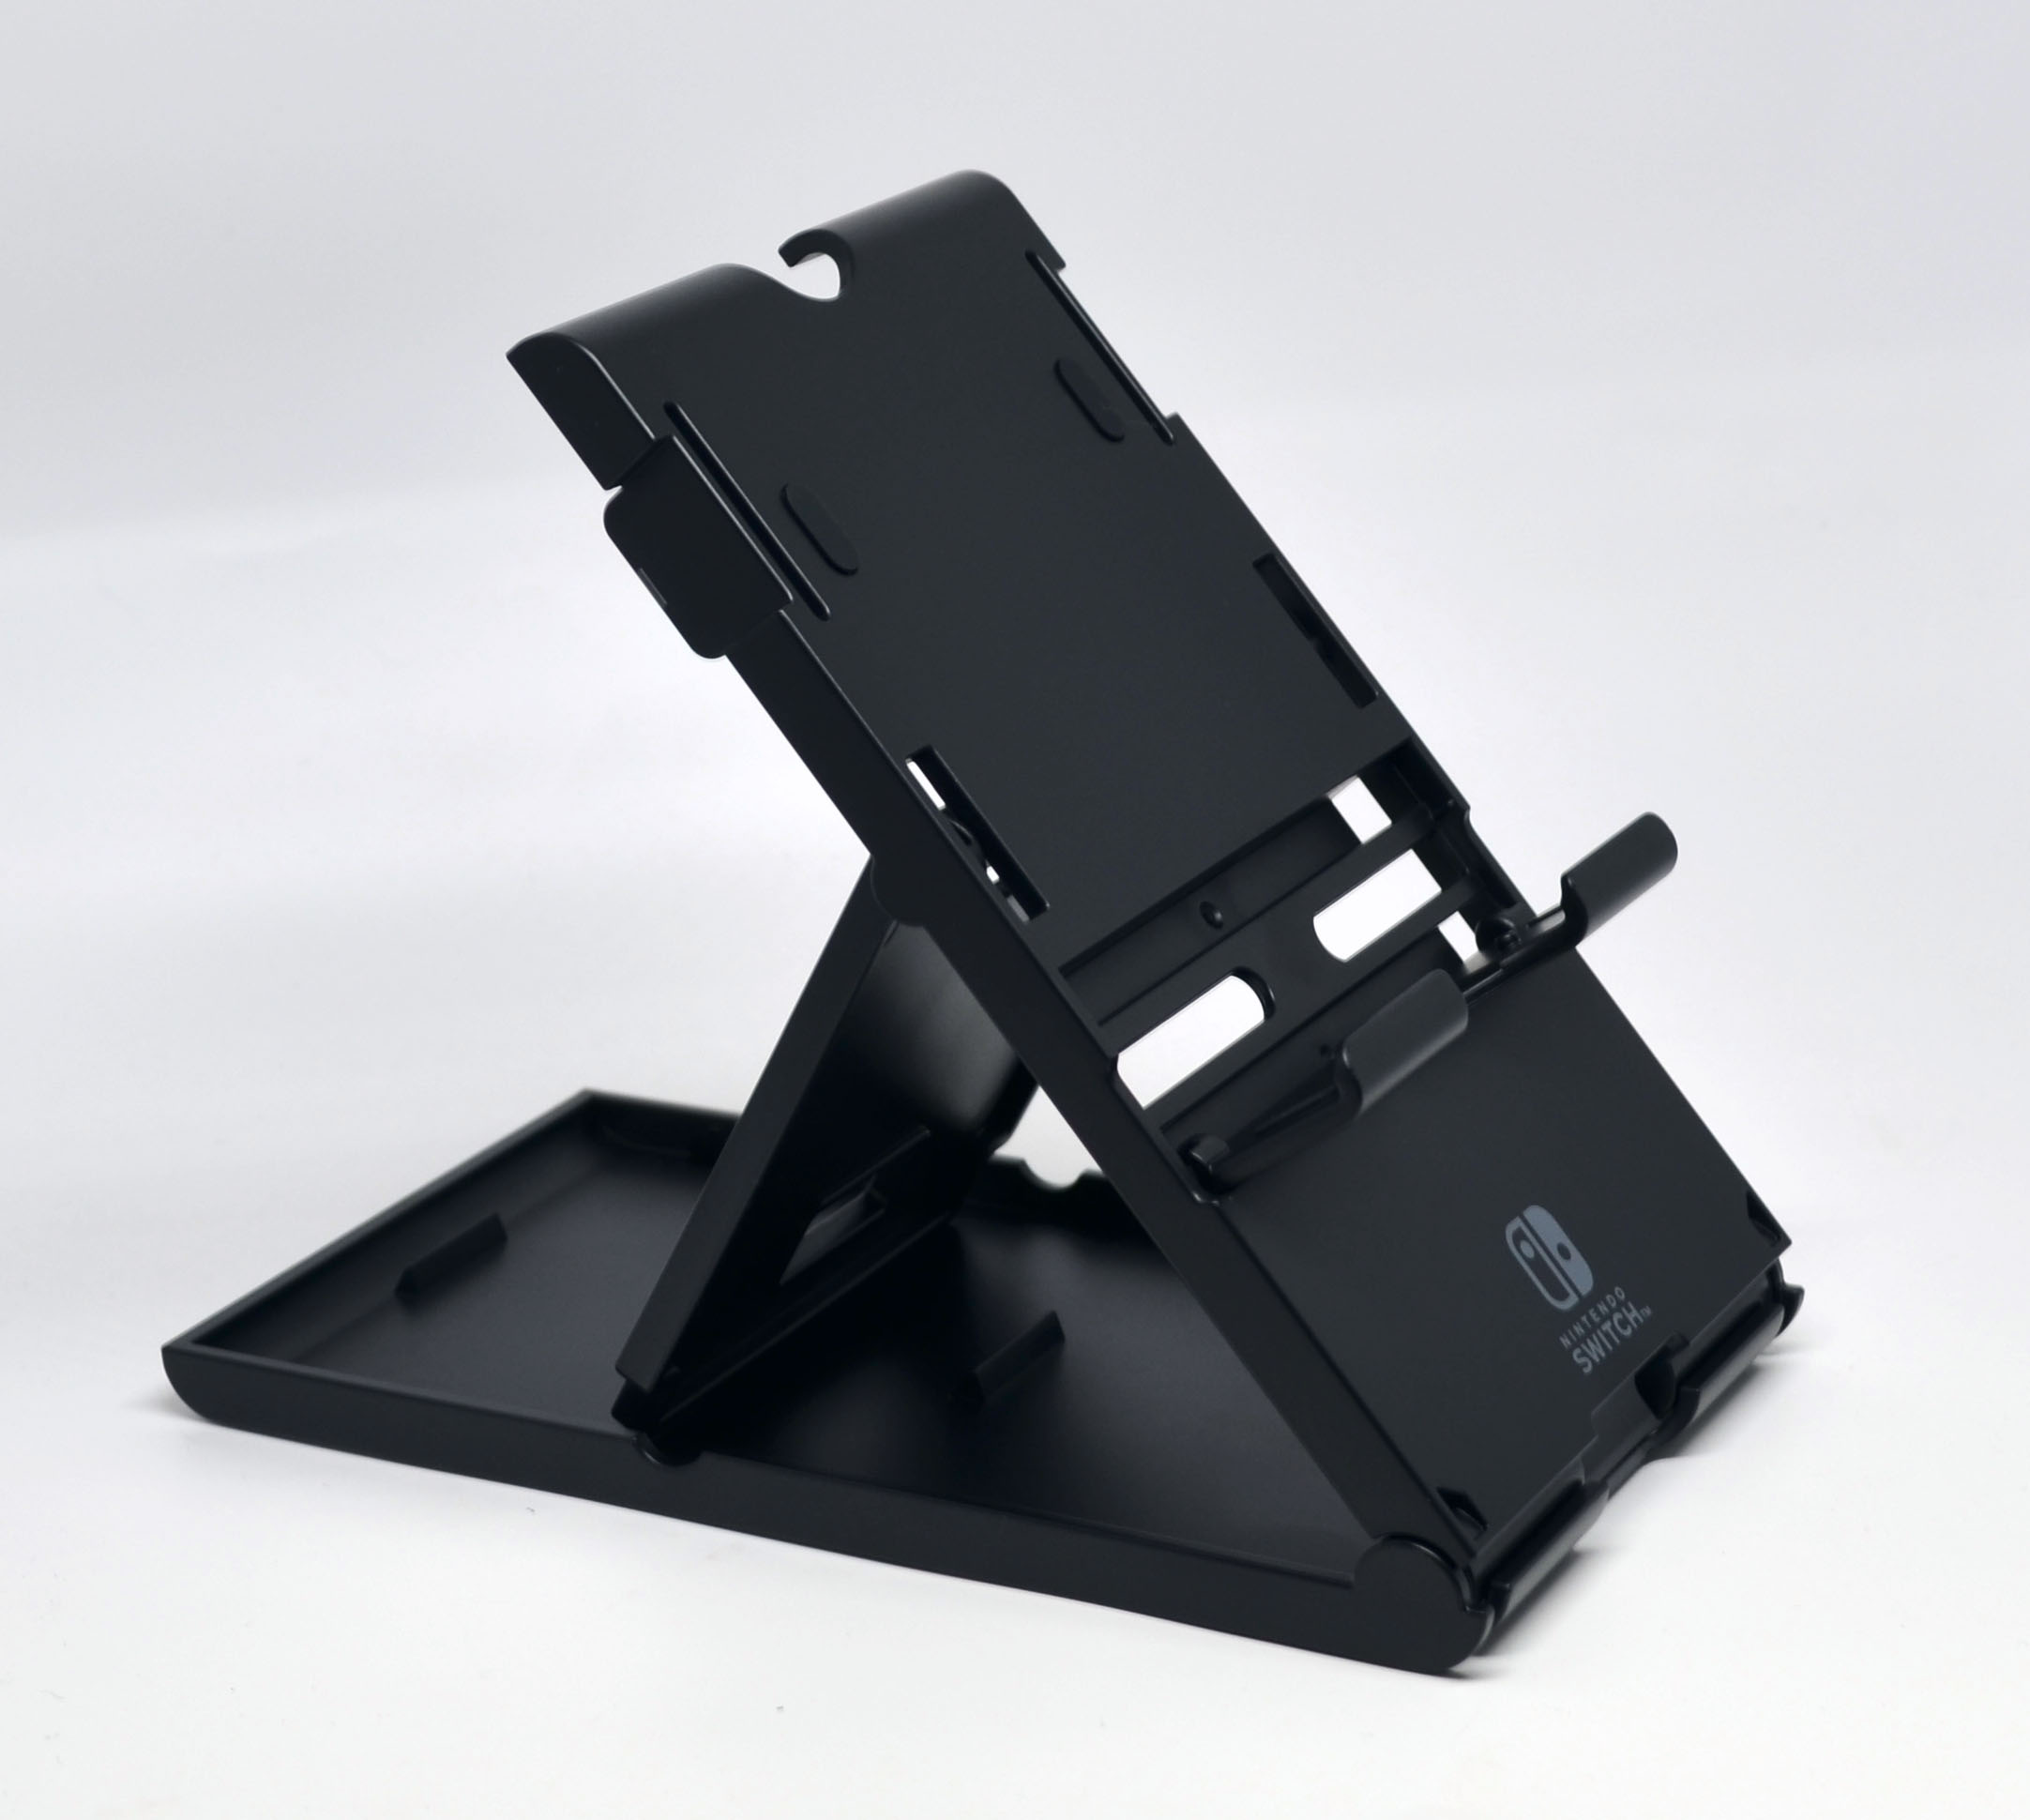 Unfolded and its kickstand placed in one of its three available positions.